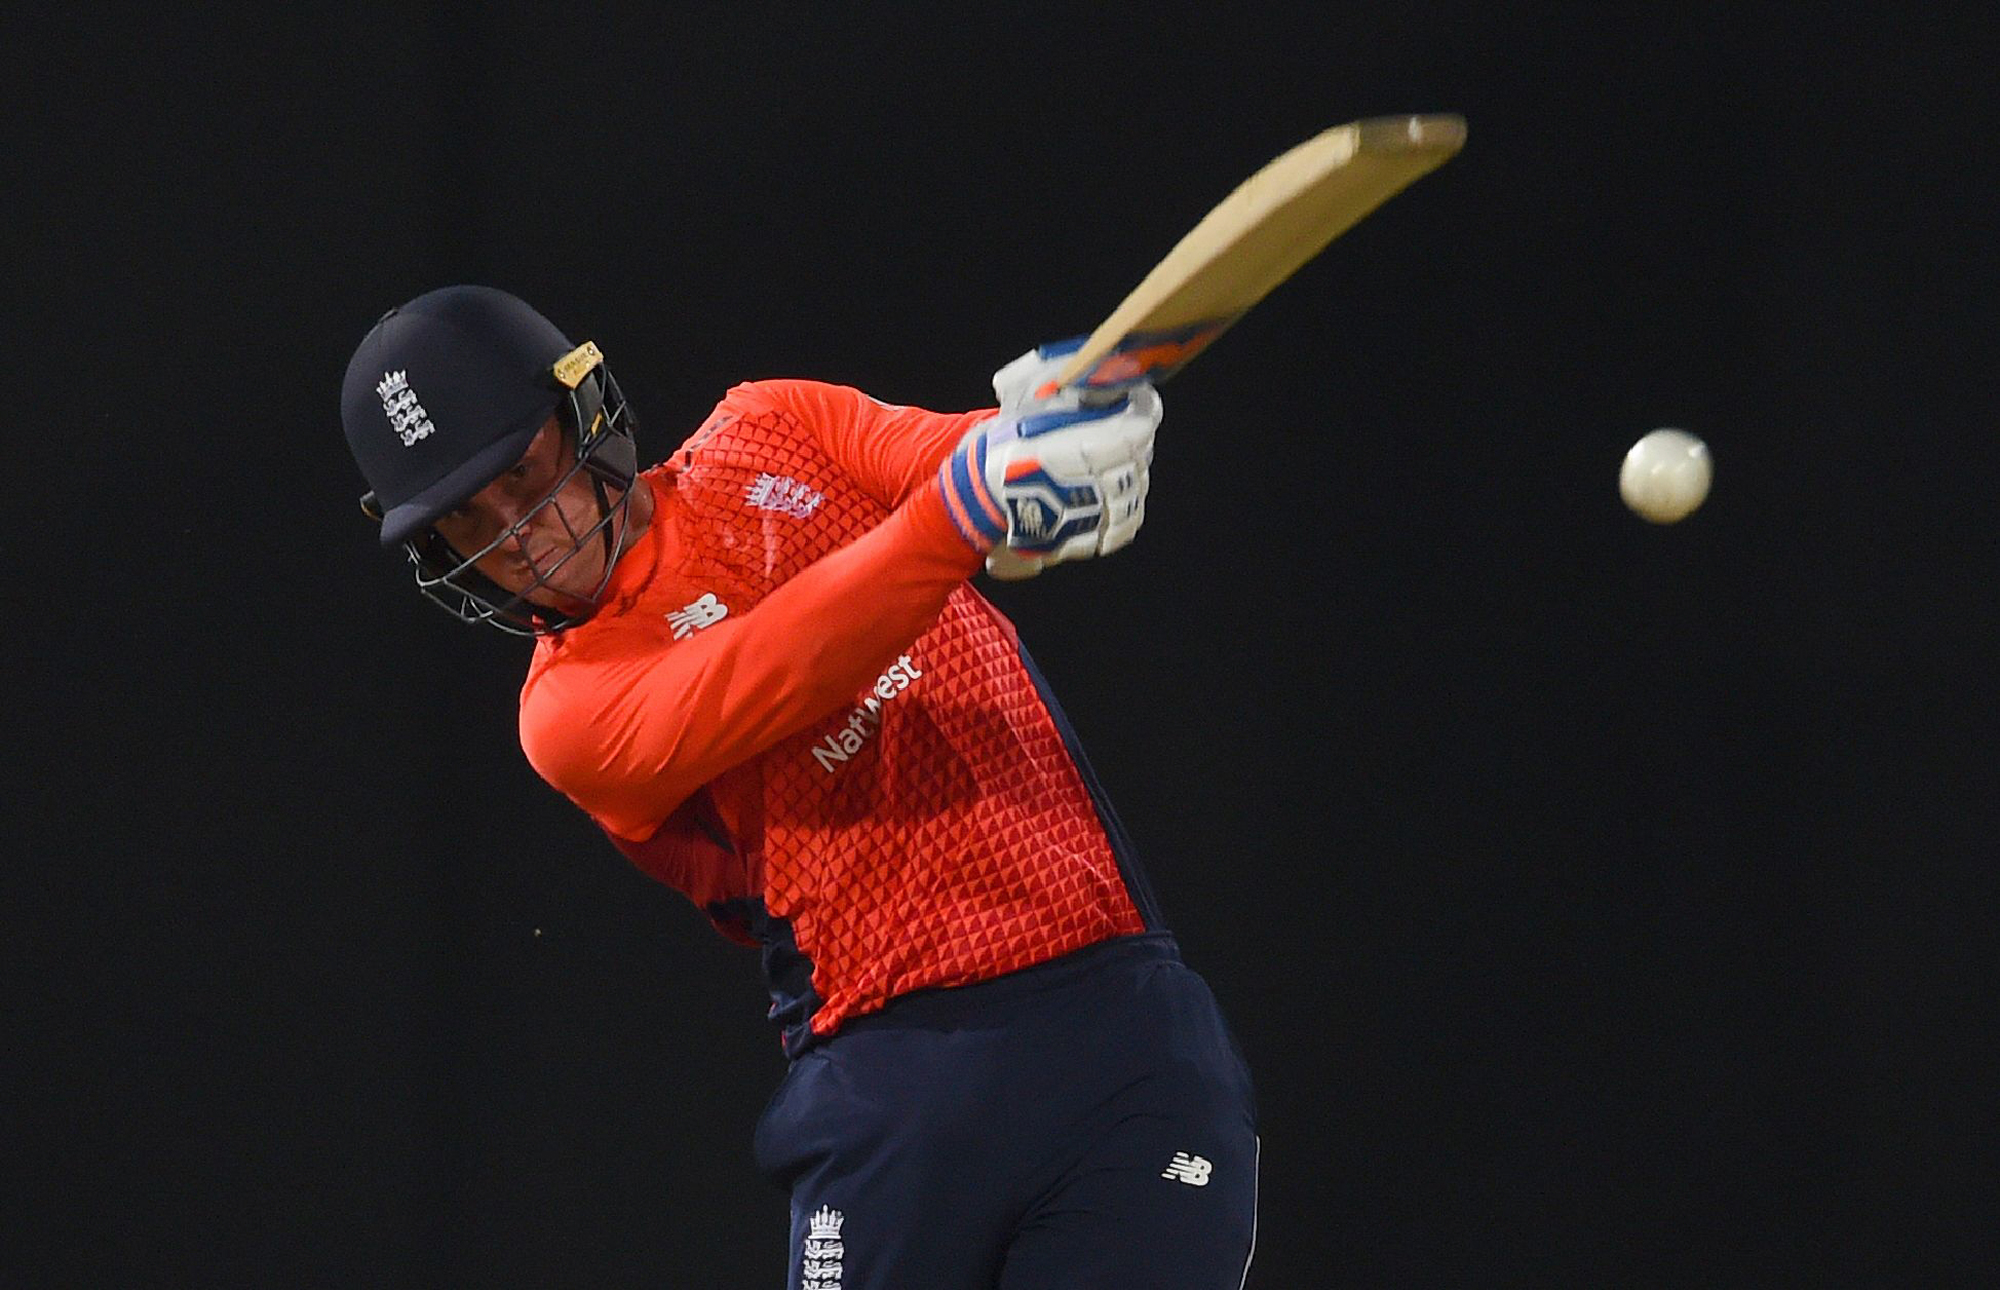 England cricketer Jason Roy plays a shot during the international Twenty20 cricket match between Sri Lanka and England at the R. Peremadasa Stadium in Colombo on October 27, 2018. (Photo by ISHARA S. KODIKARA / AFP)